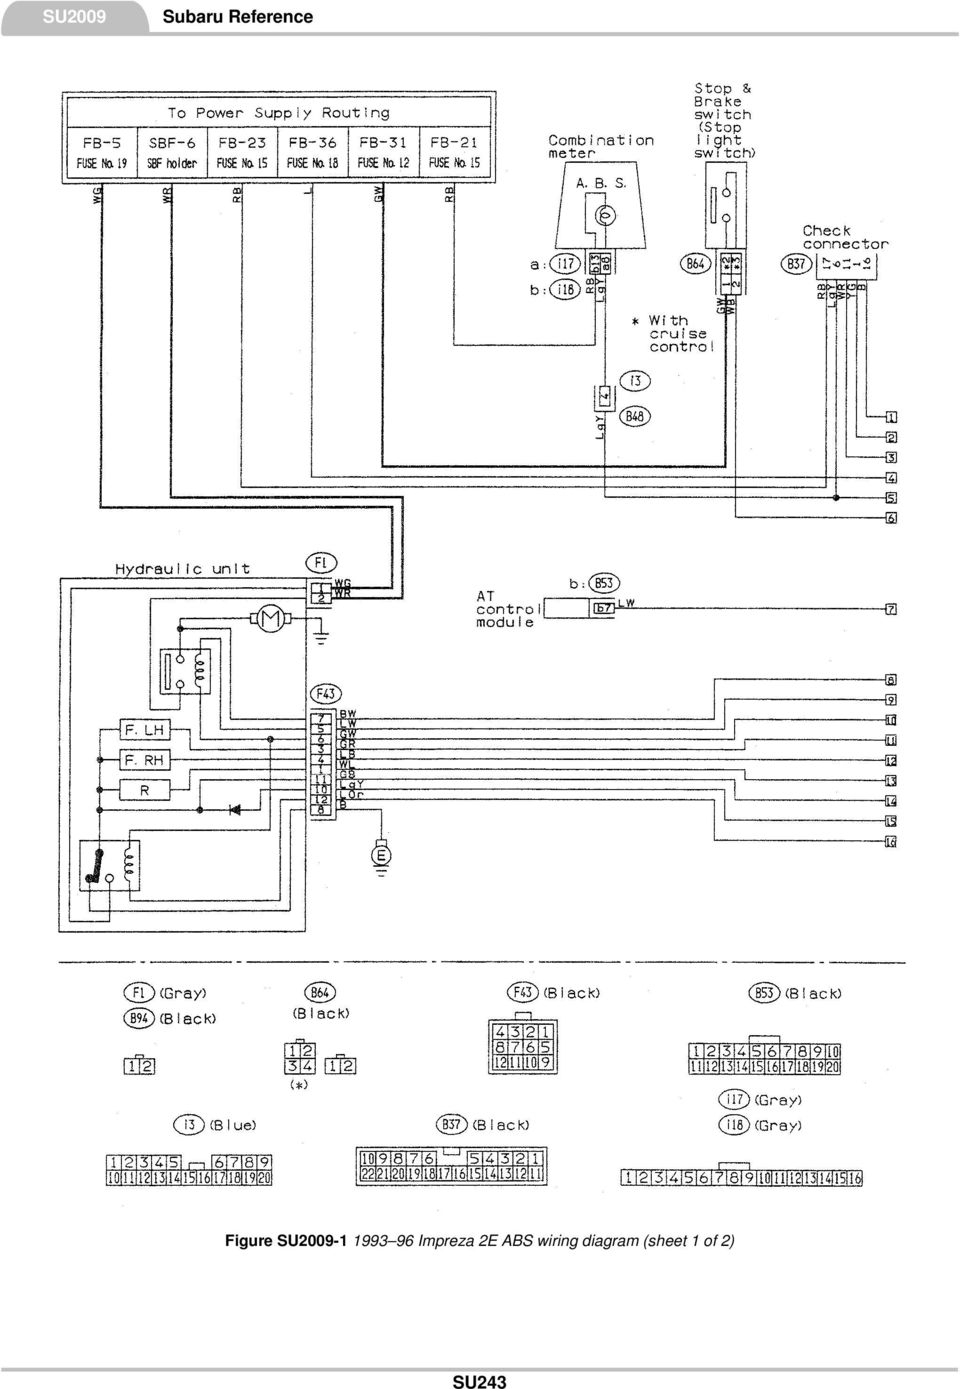 Subaru R2 Wiring Diagram Trusted Schematics Ej22 Engine Reference This Contains The Following Information Forester Abs